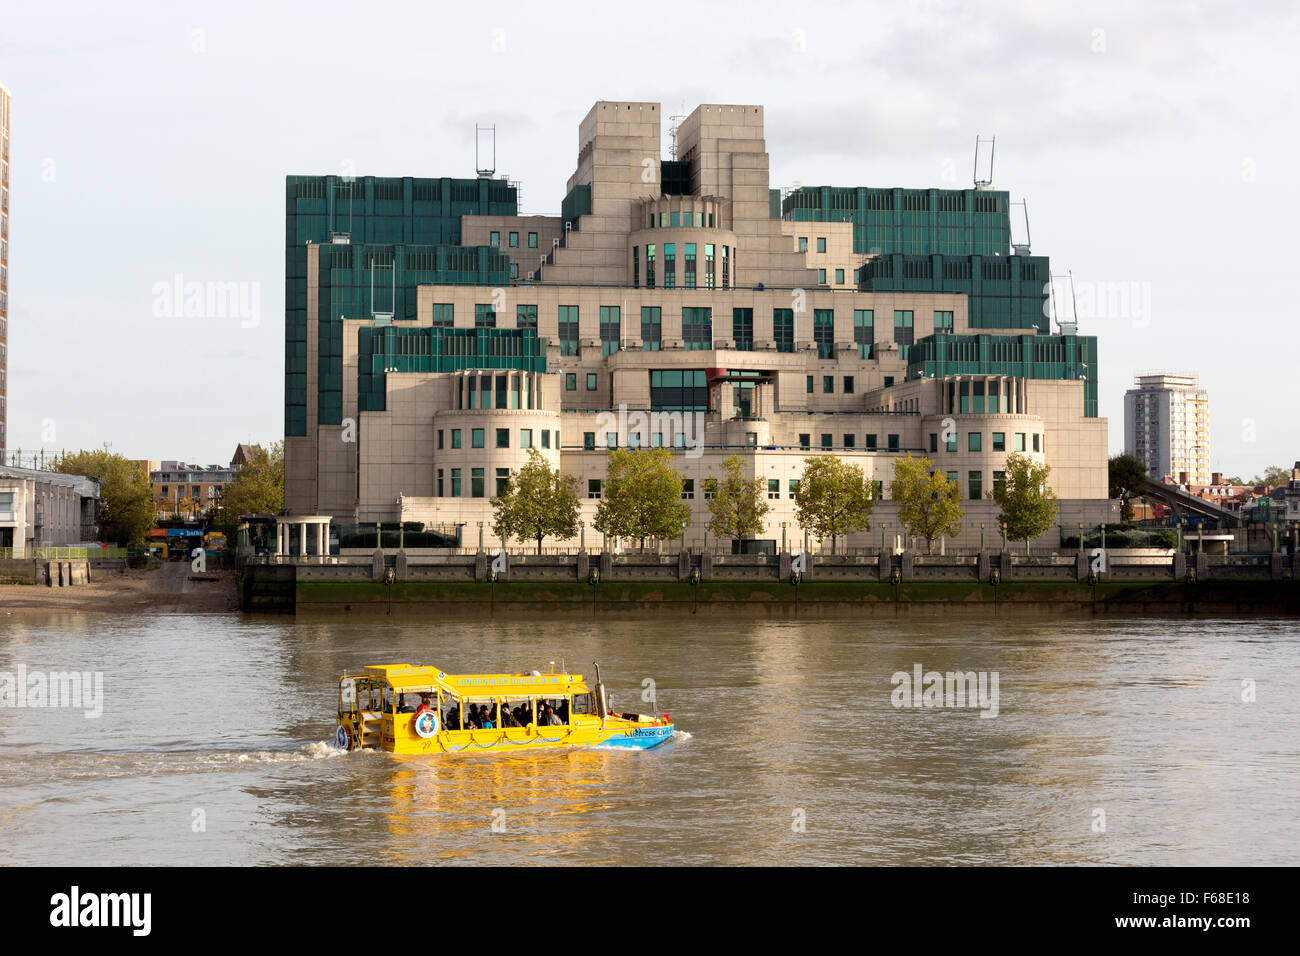 London Duck Tours amphibious vehicle on the river Thames passing the MI6 headquarters, Vauxhall, London - Stock Image